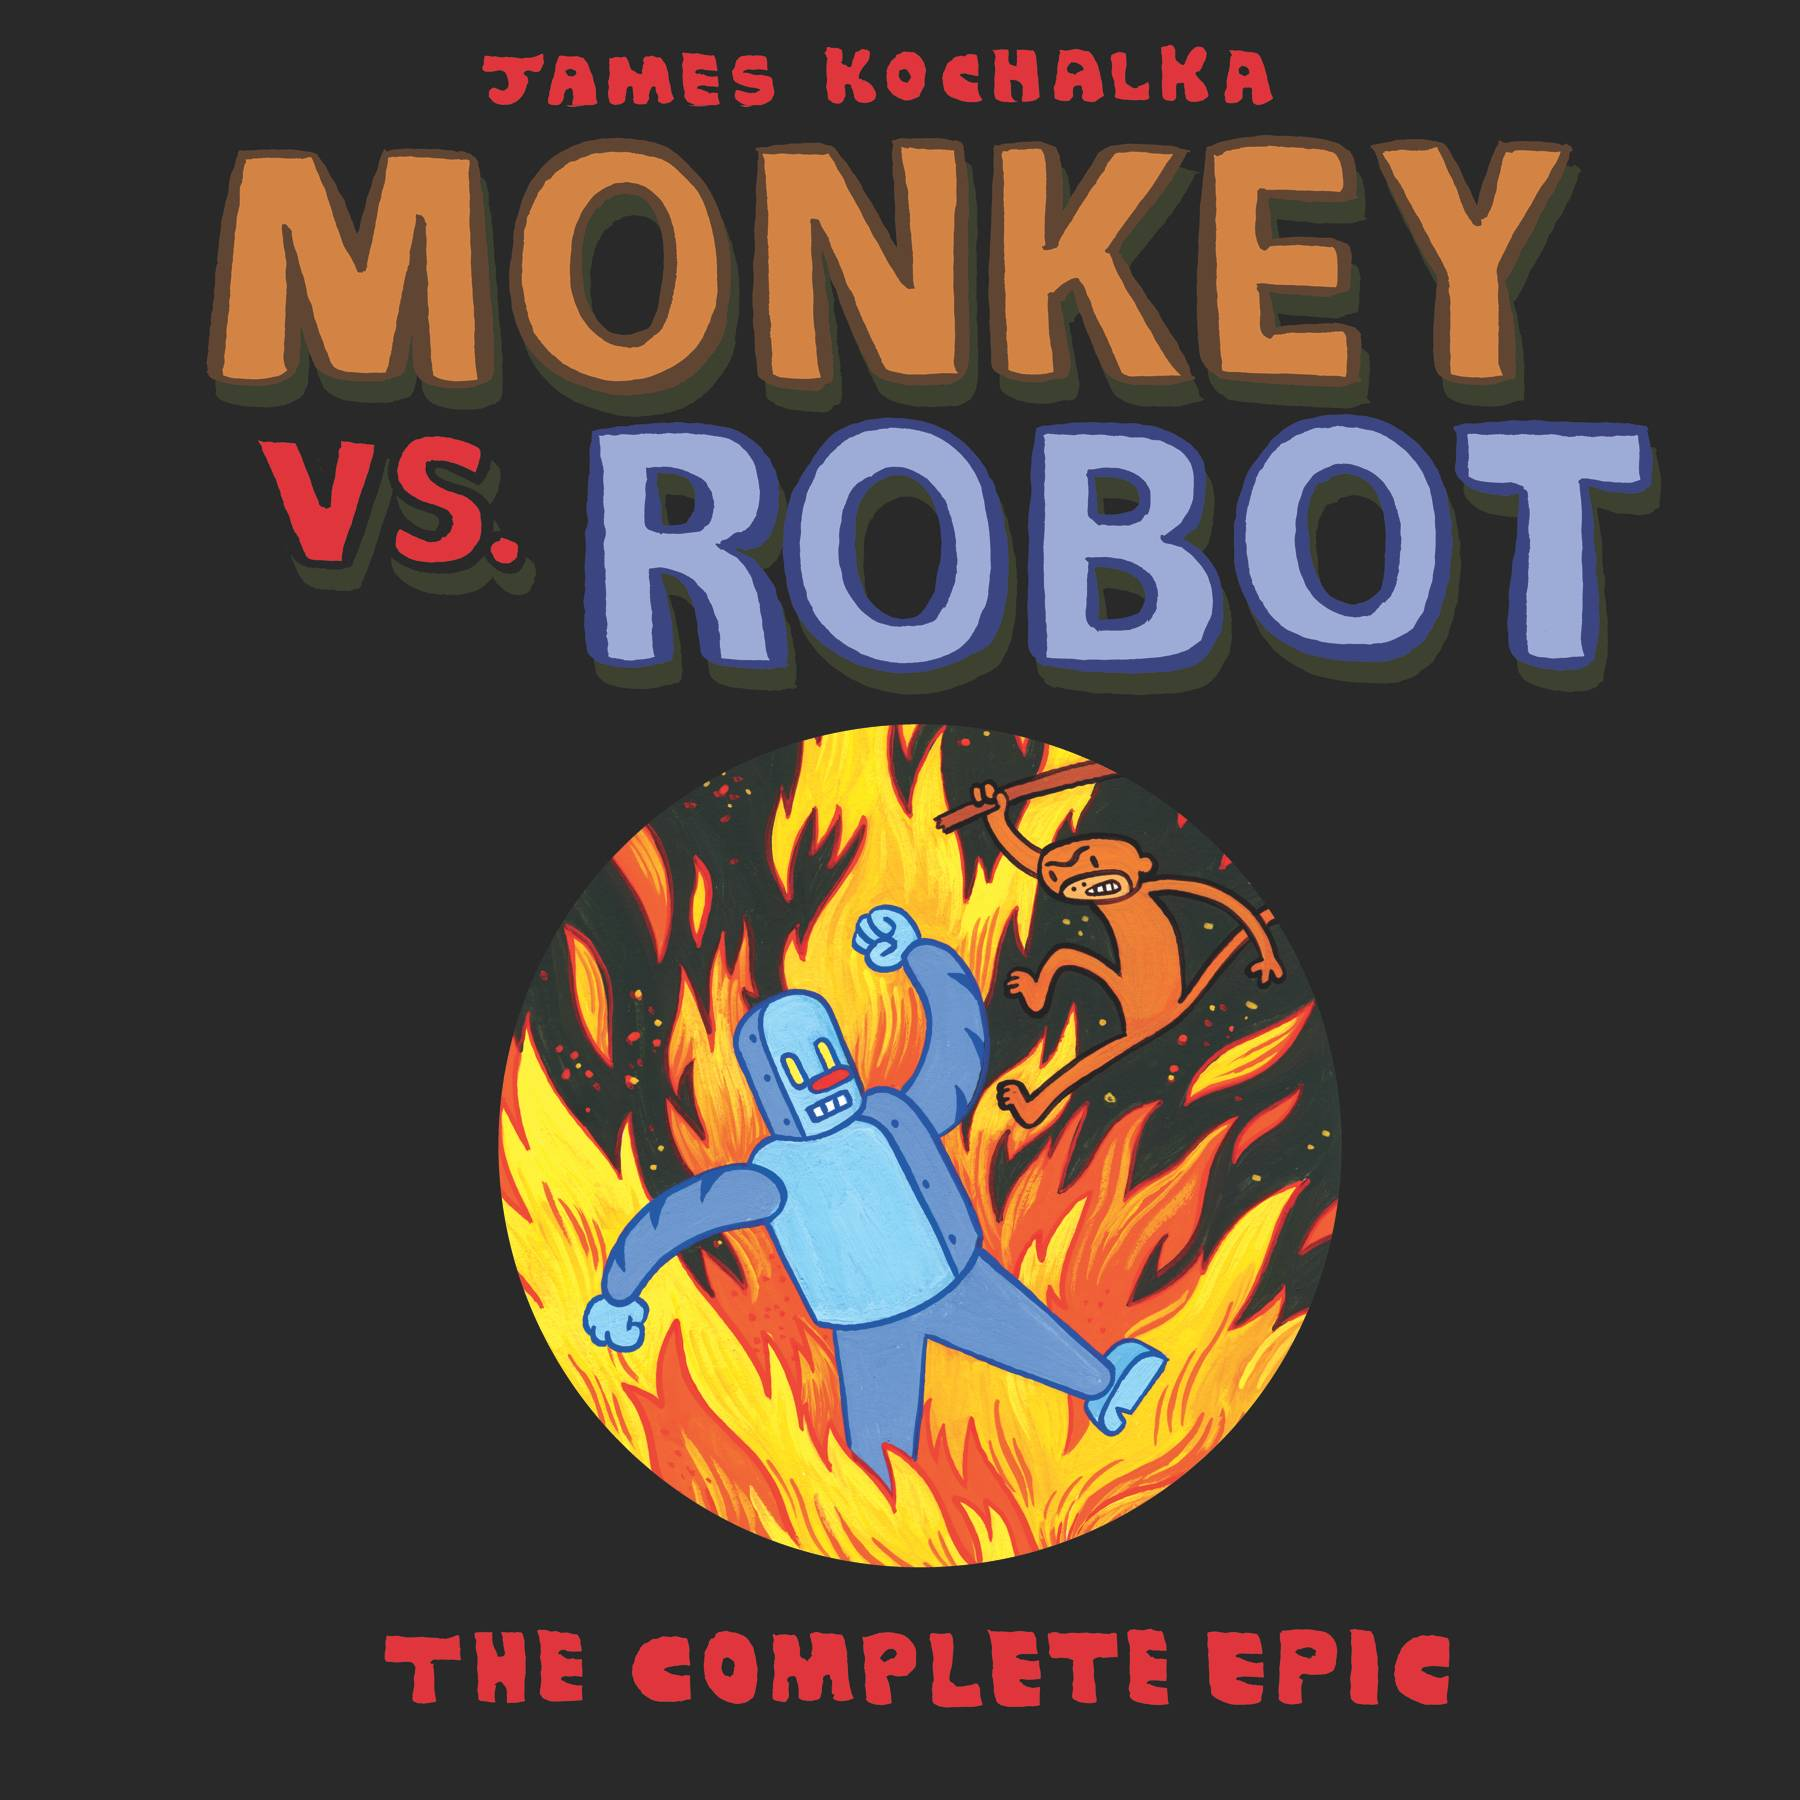 MONKEY VS ROBOT COMPLETE EPIC TP